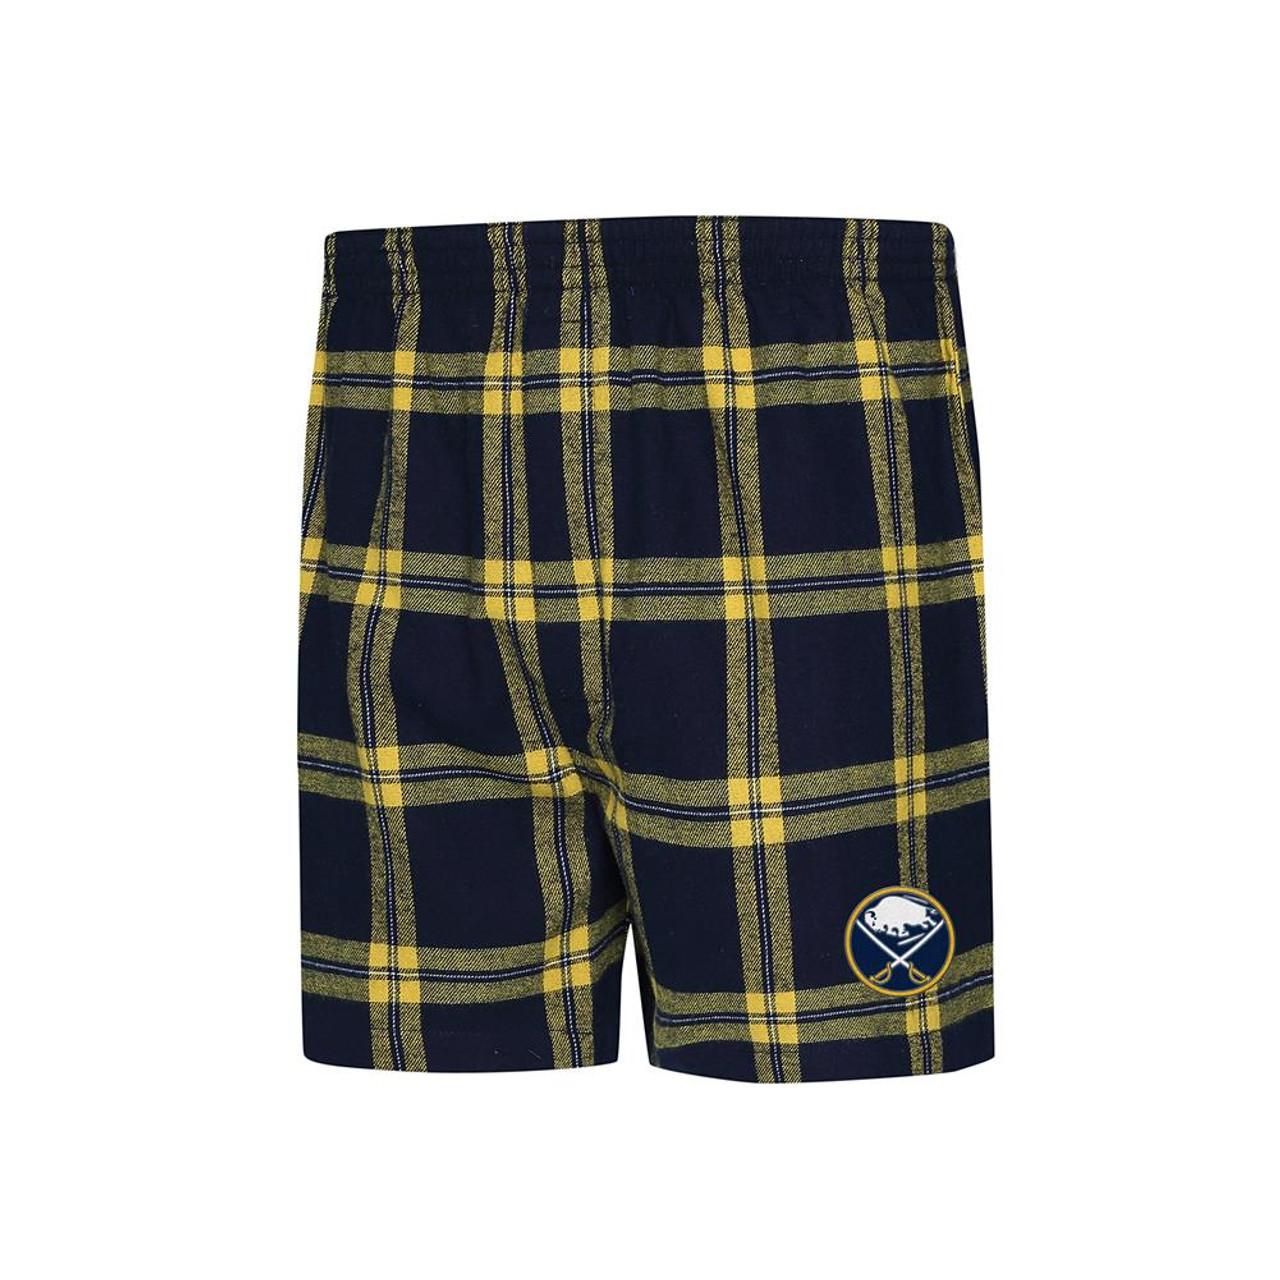 Concepts Sport Buffalo Sabres Mens Boxers Flannel Boxer Shorts